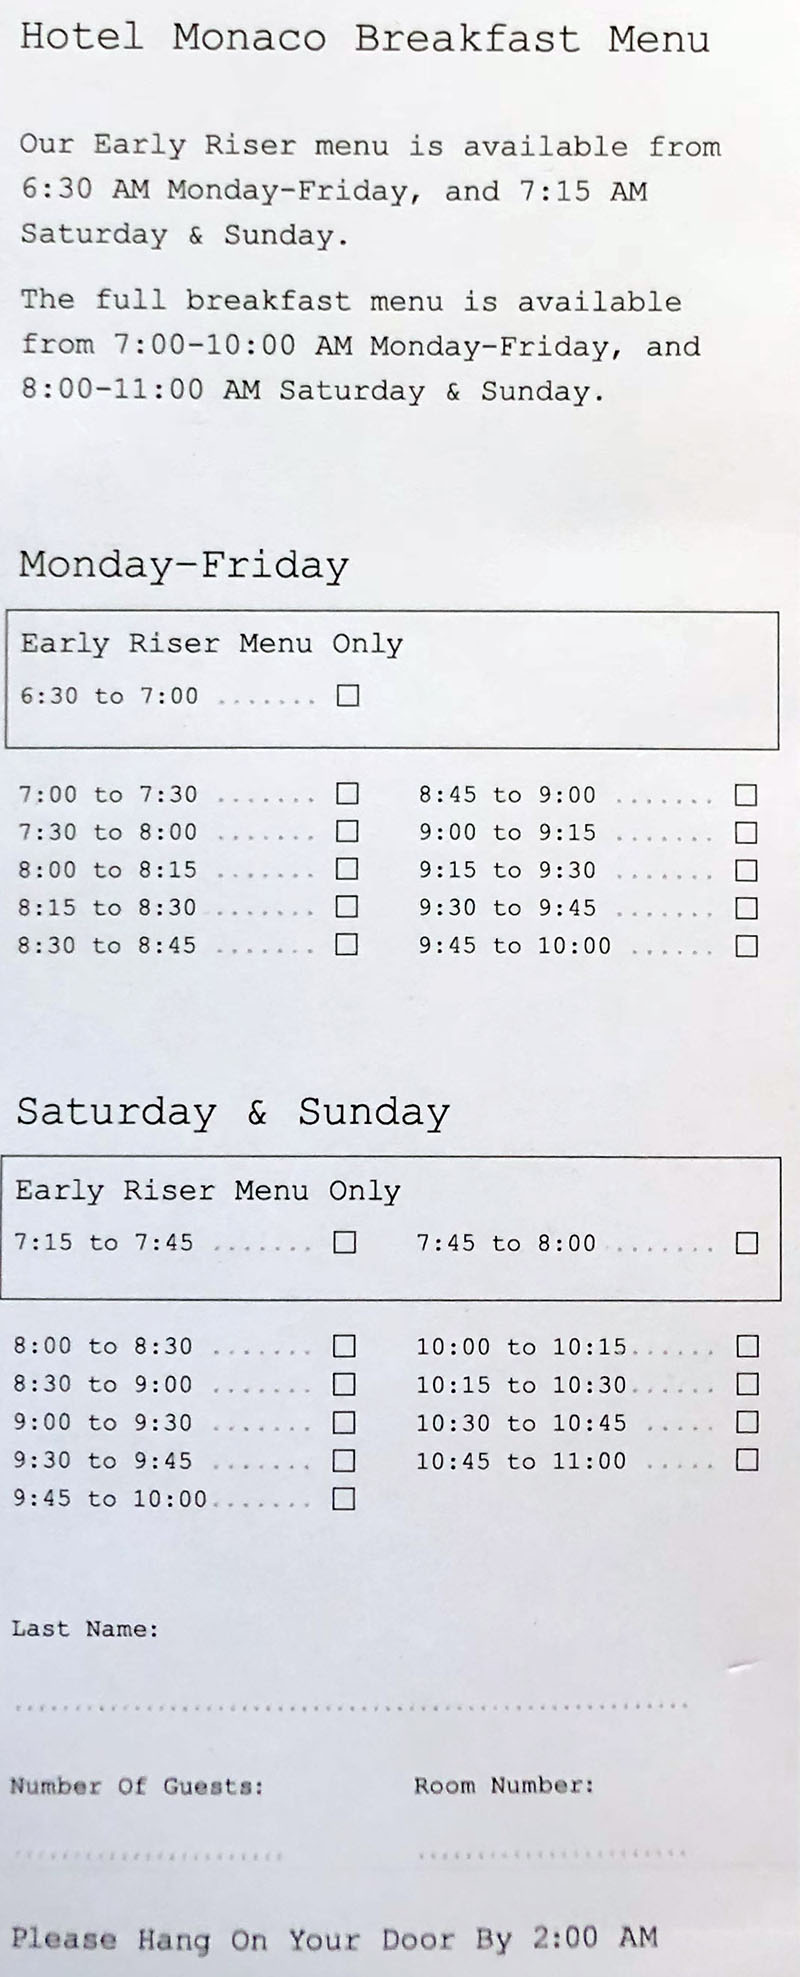 Hotel Monaco Salt Lake City room service menu - breakfast order form continued